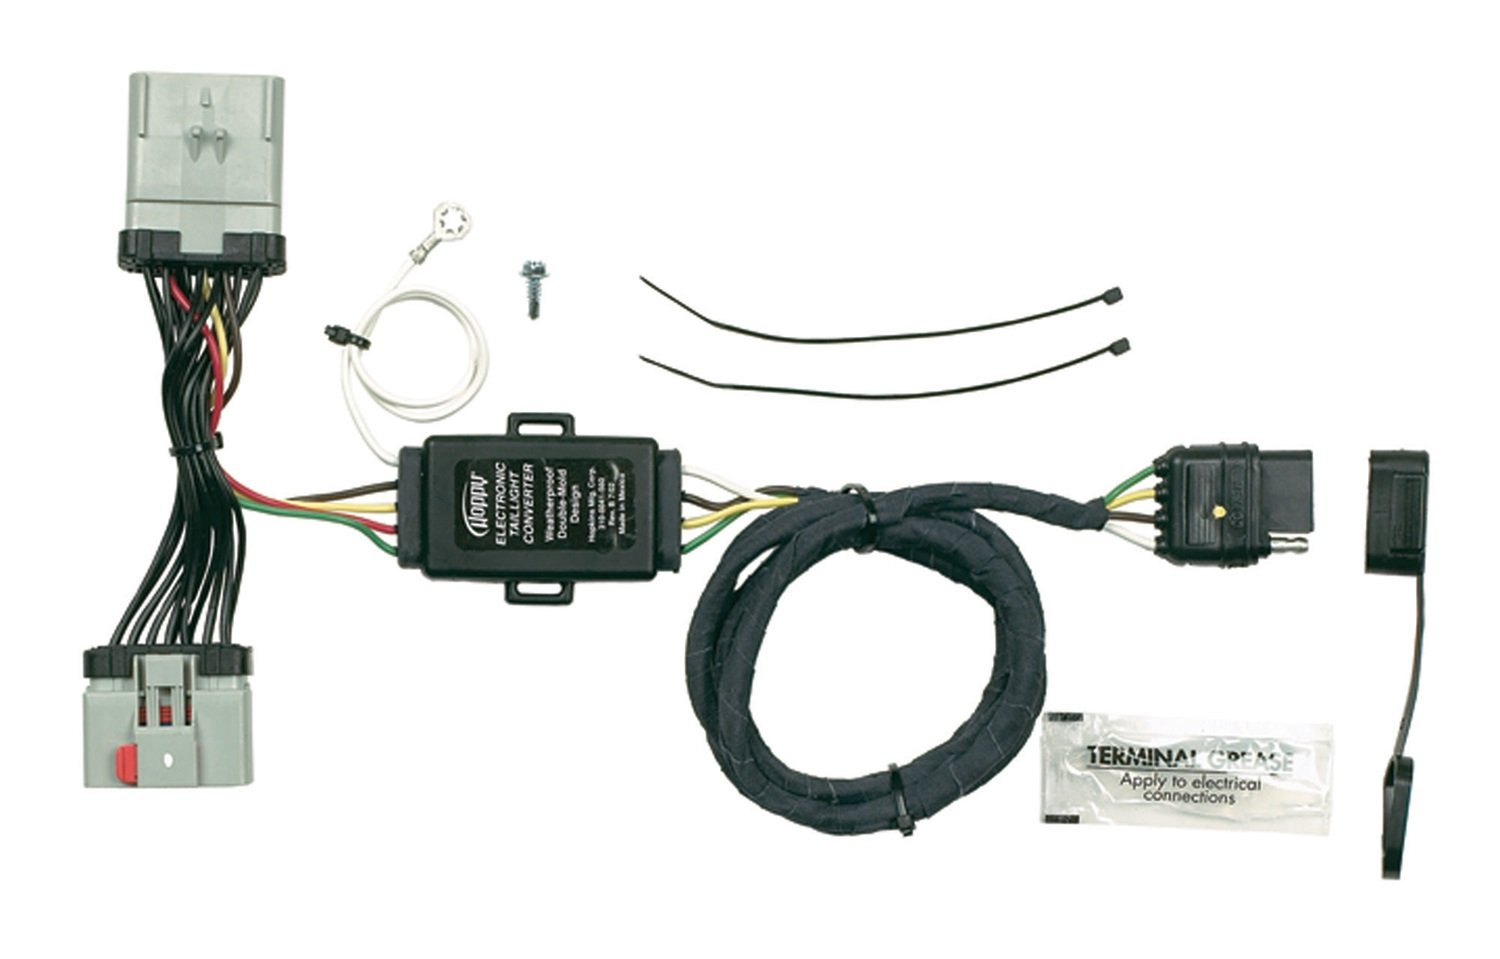 61a1DM22CCL._SL1500_ amazon com hopkins 42475 plug in simple vehicle wiring kit 2004 jeep liberty trailer wiring harness at bayanpartner.co